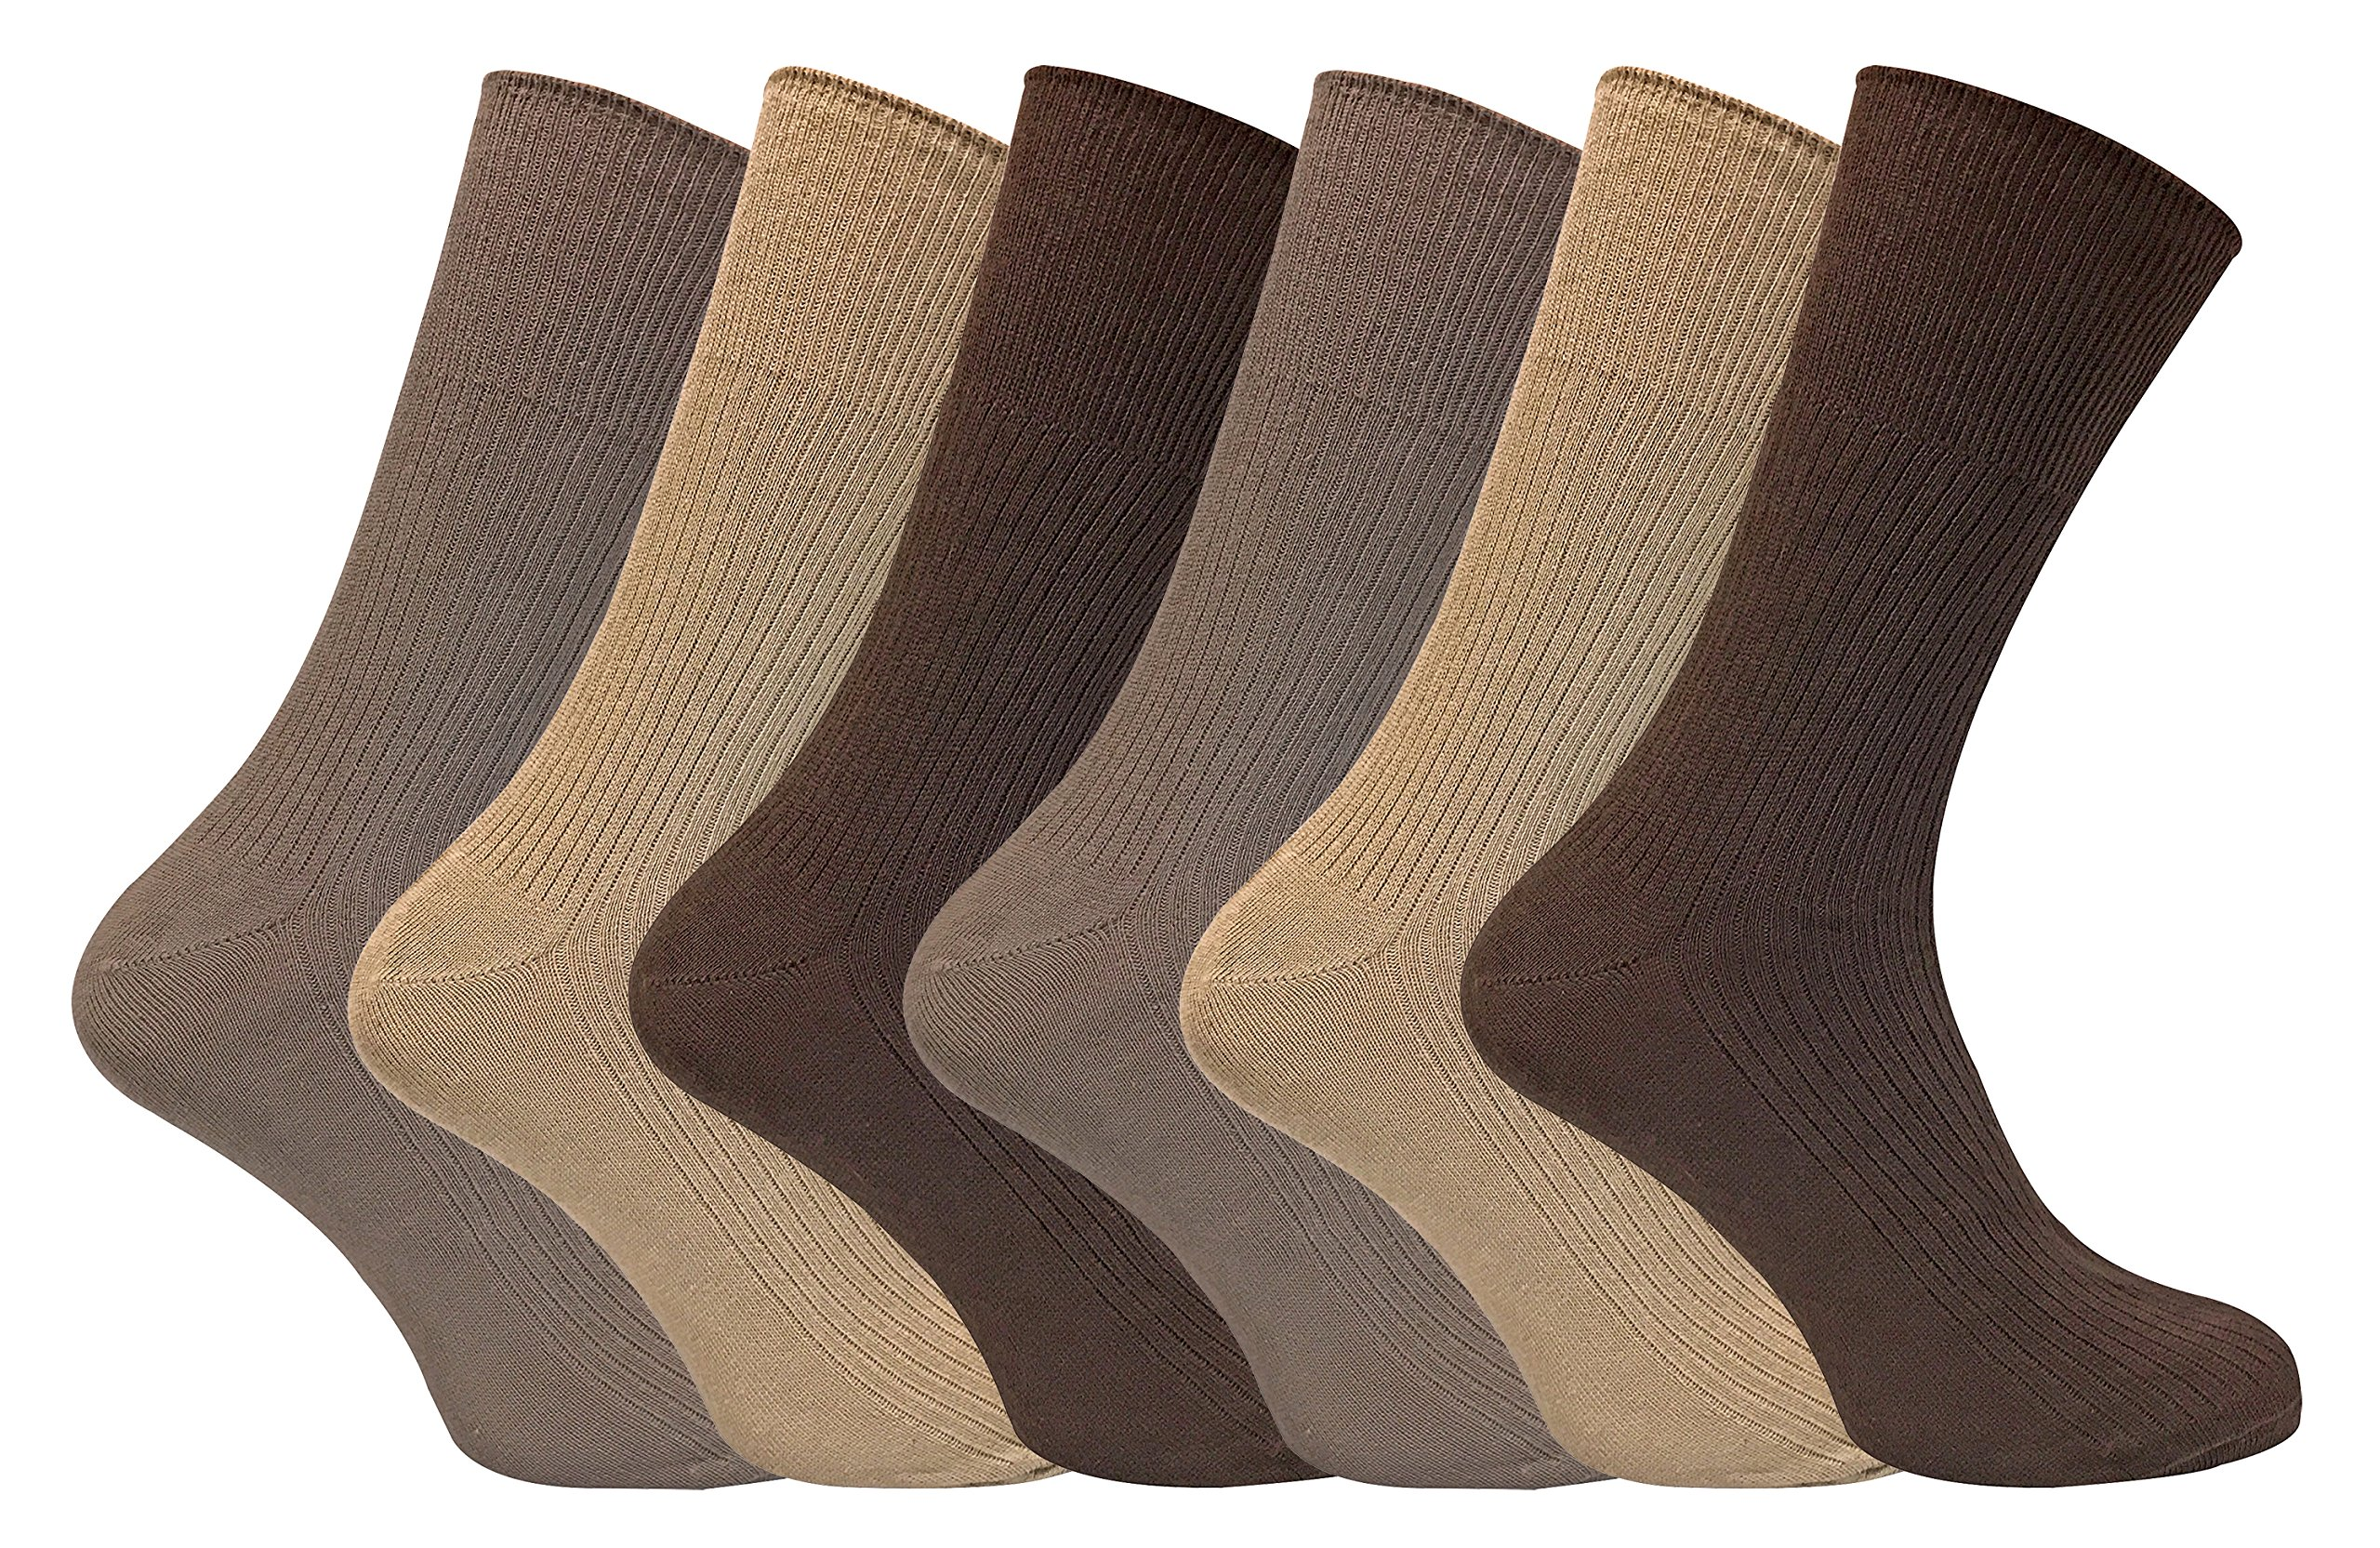 6 Pack Mens 100% Cotton Non Binding Loose Top Lightweight Ribbed Dress Socks (7-12 US, TSFD02)